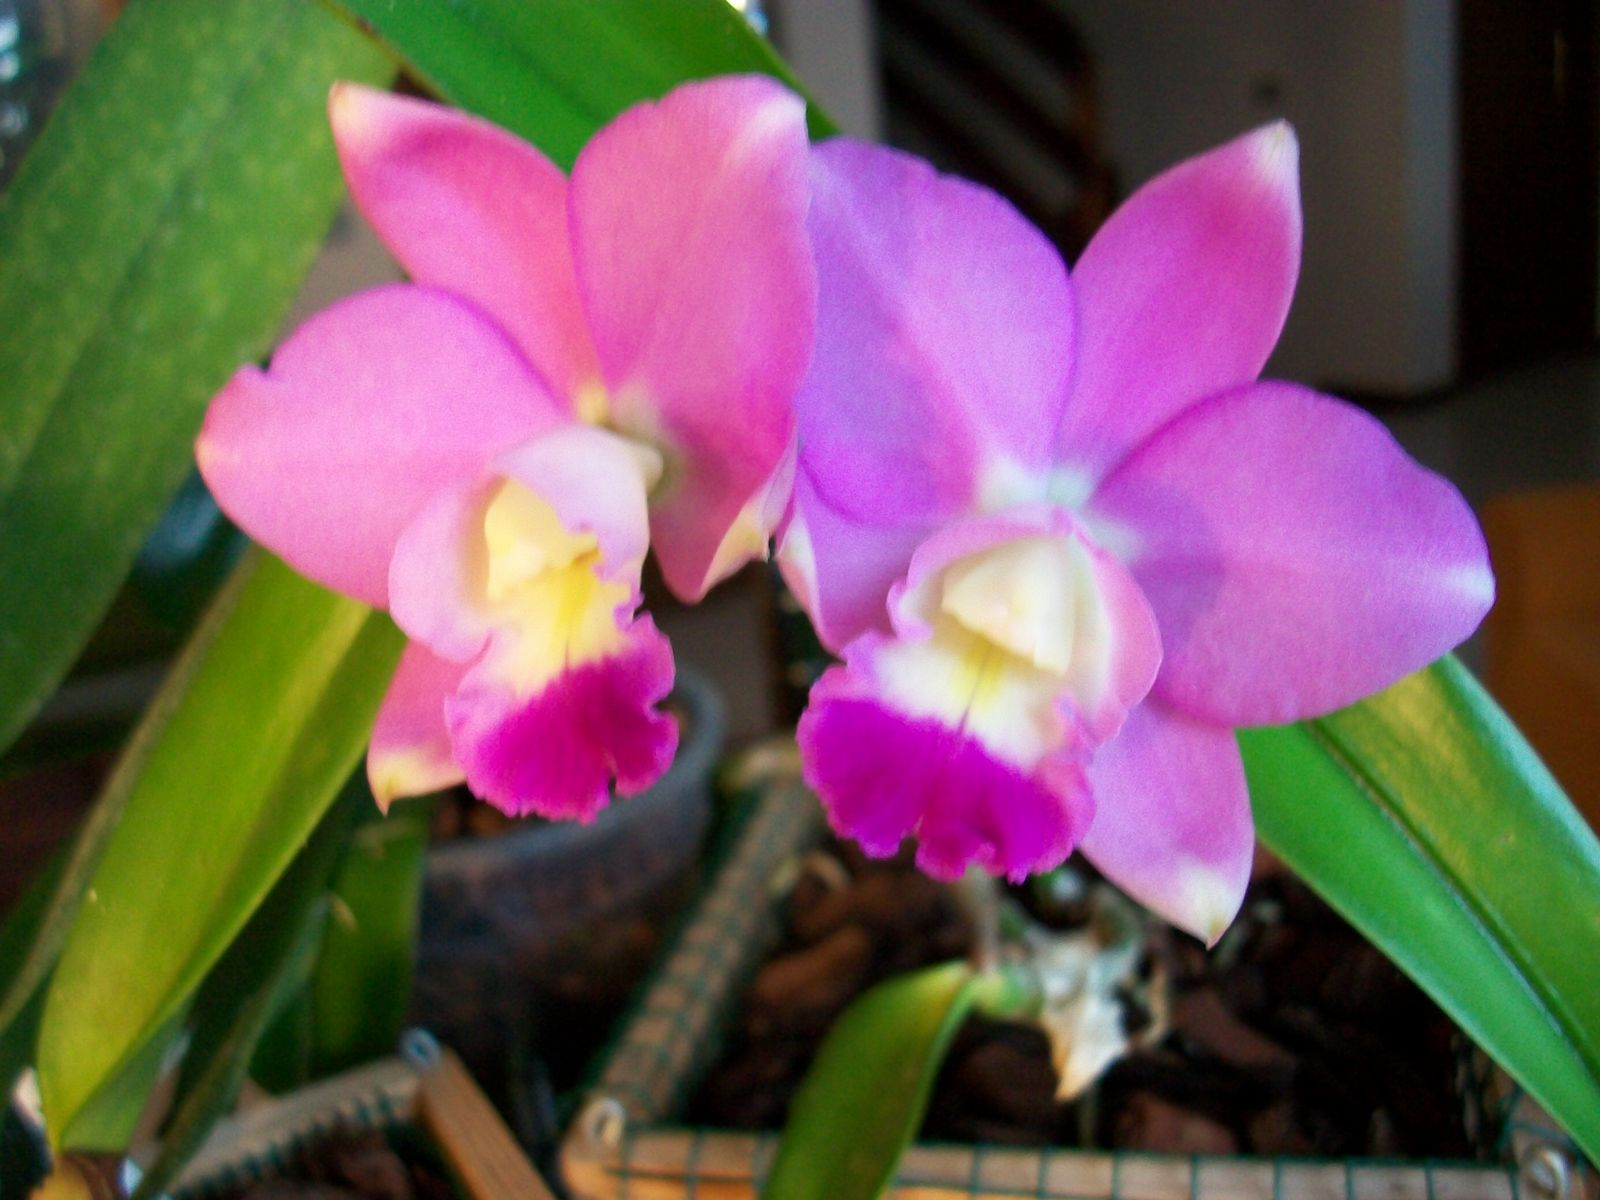 Le orchidee di antonia cattleya ibrido for Le orchidee